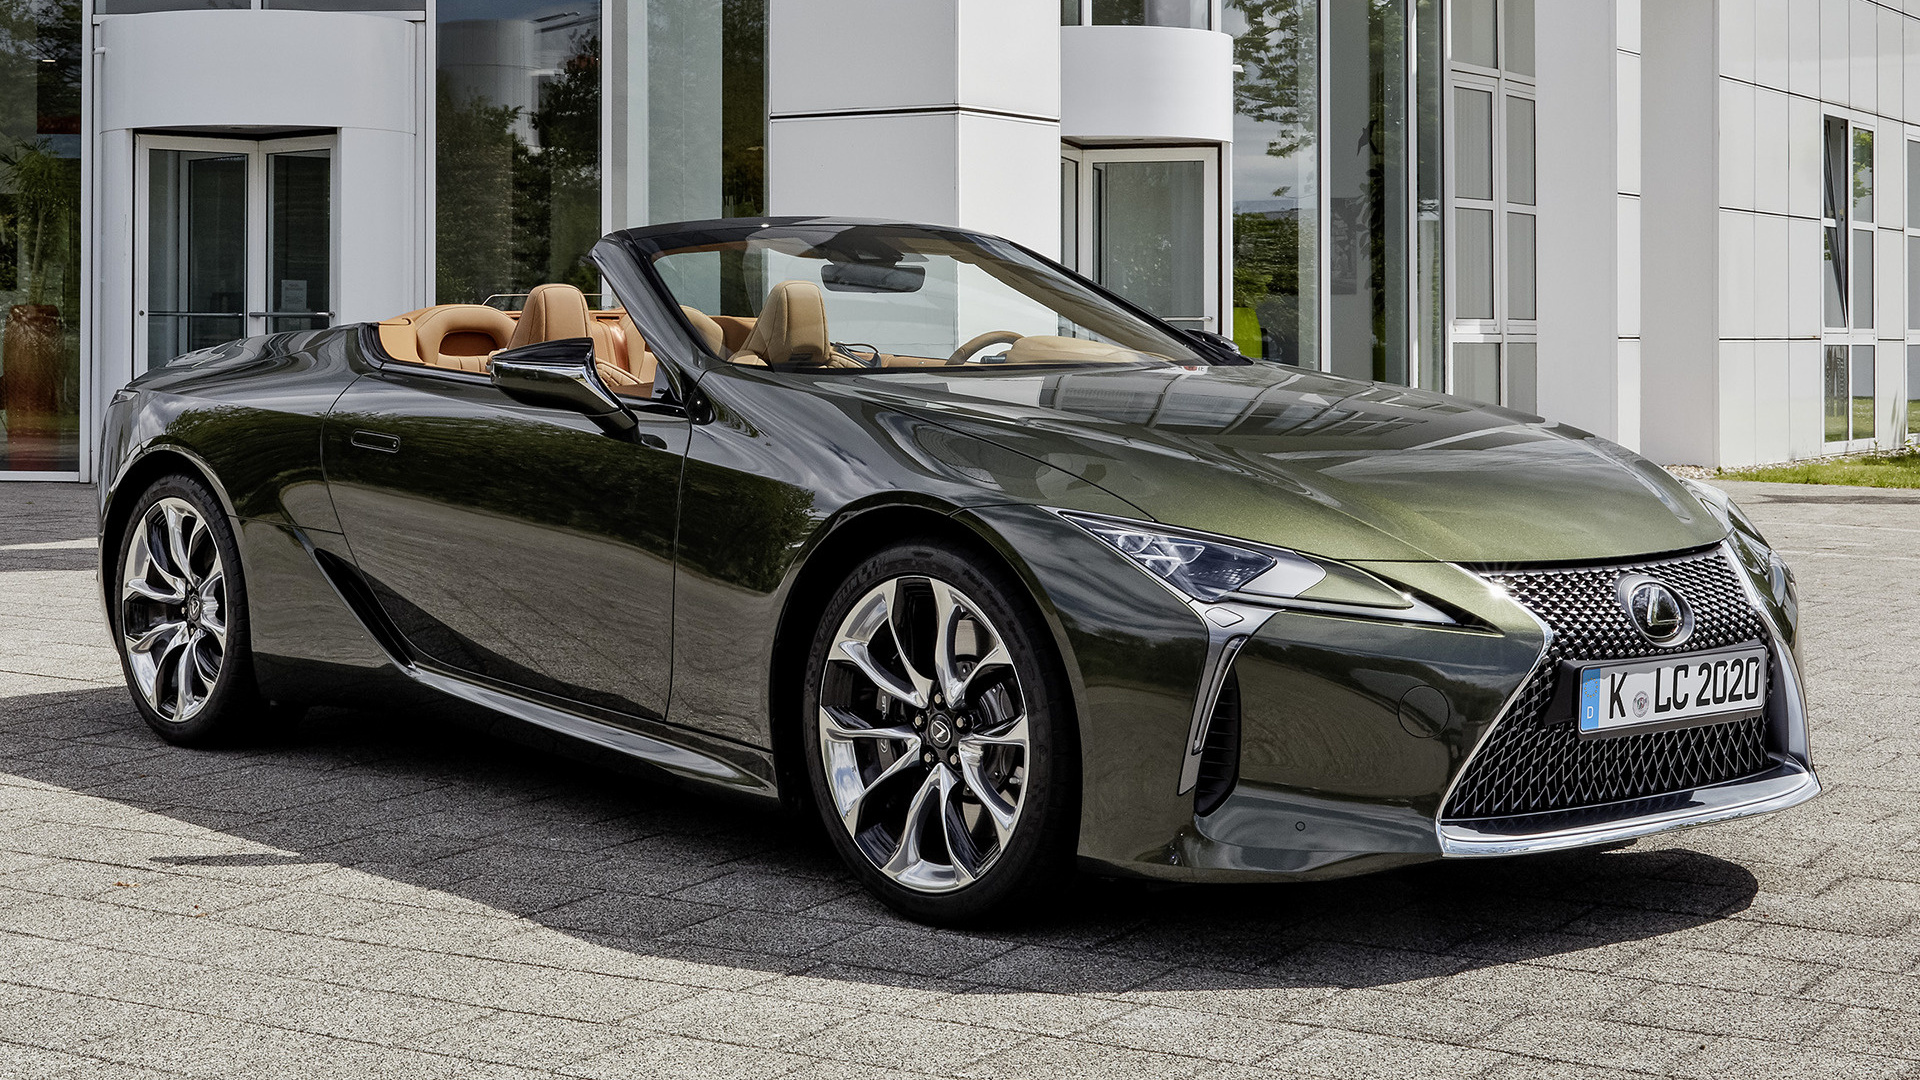 2020 lexus lc convertible - wallpapers and hd images   car